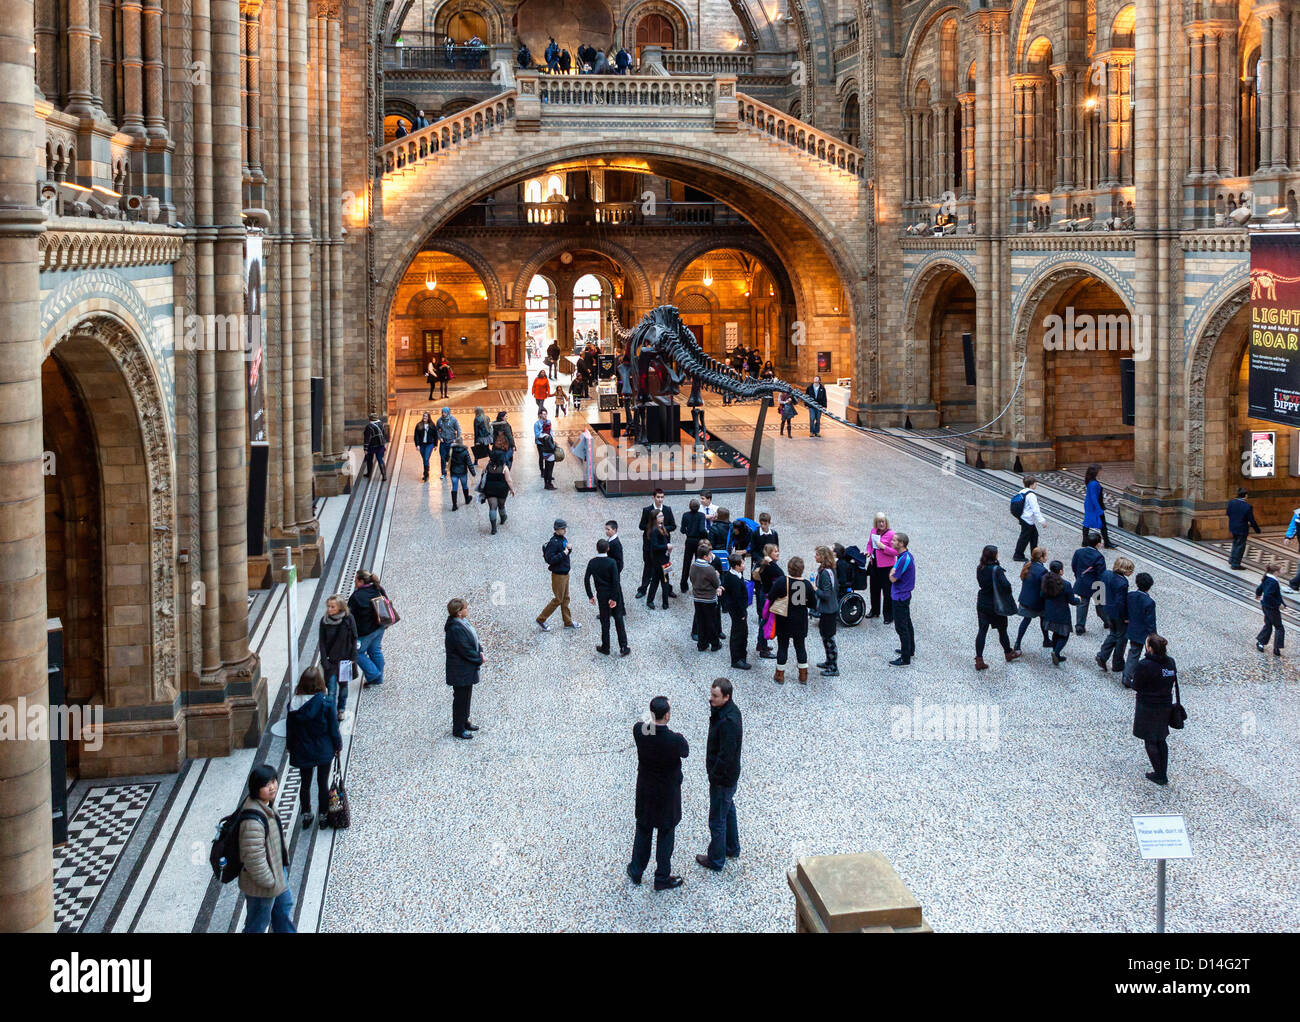 View of  the  main hall from the upper gallery at Natural History Museum, London - Stock Image